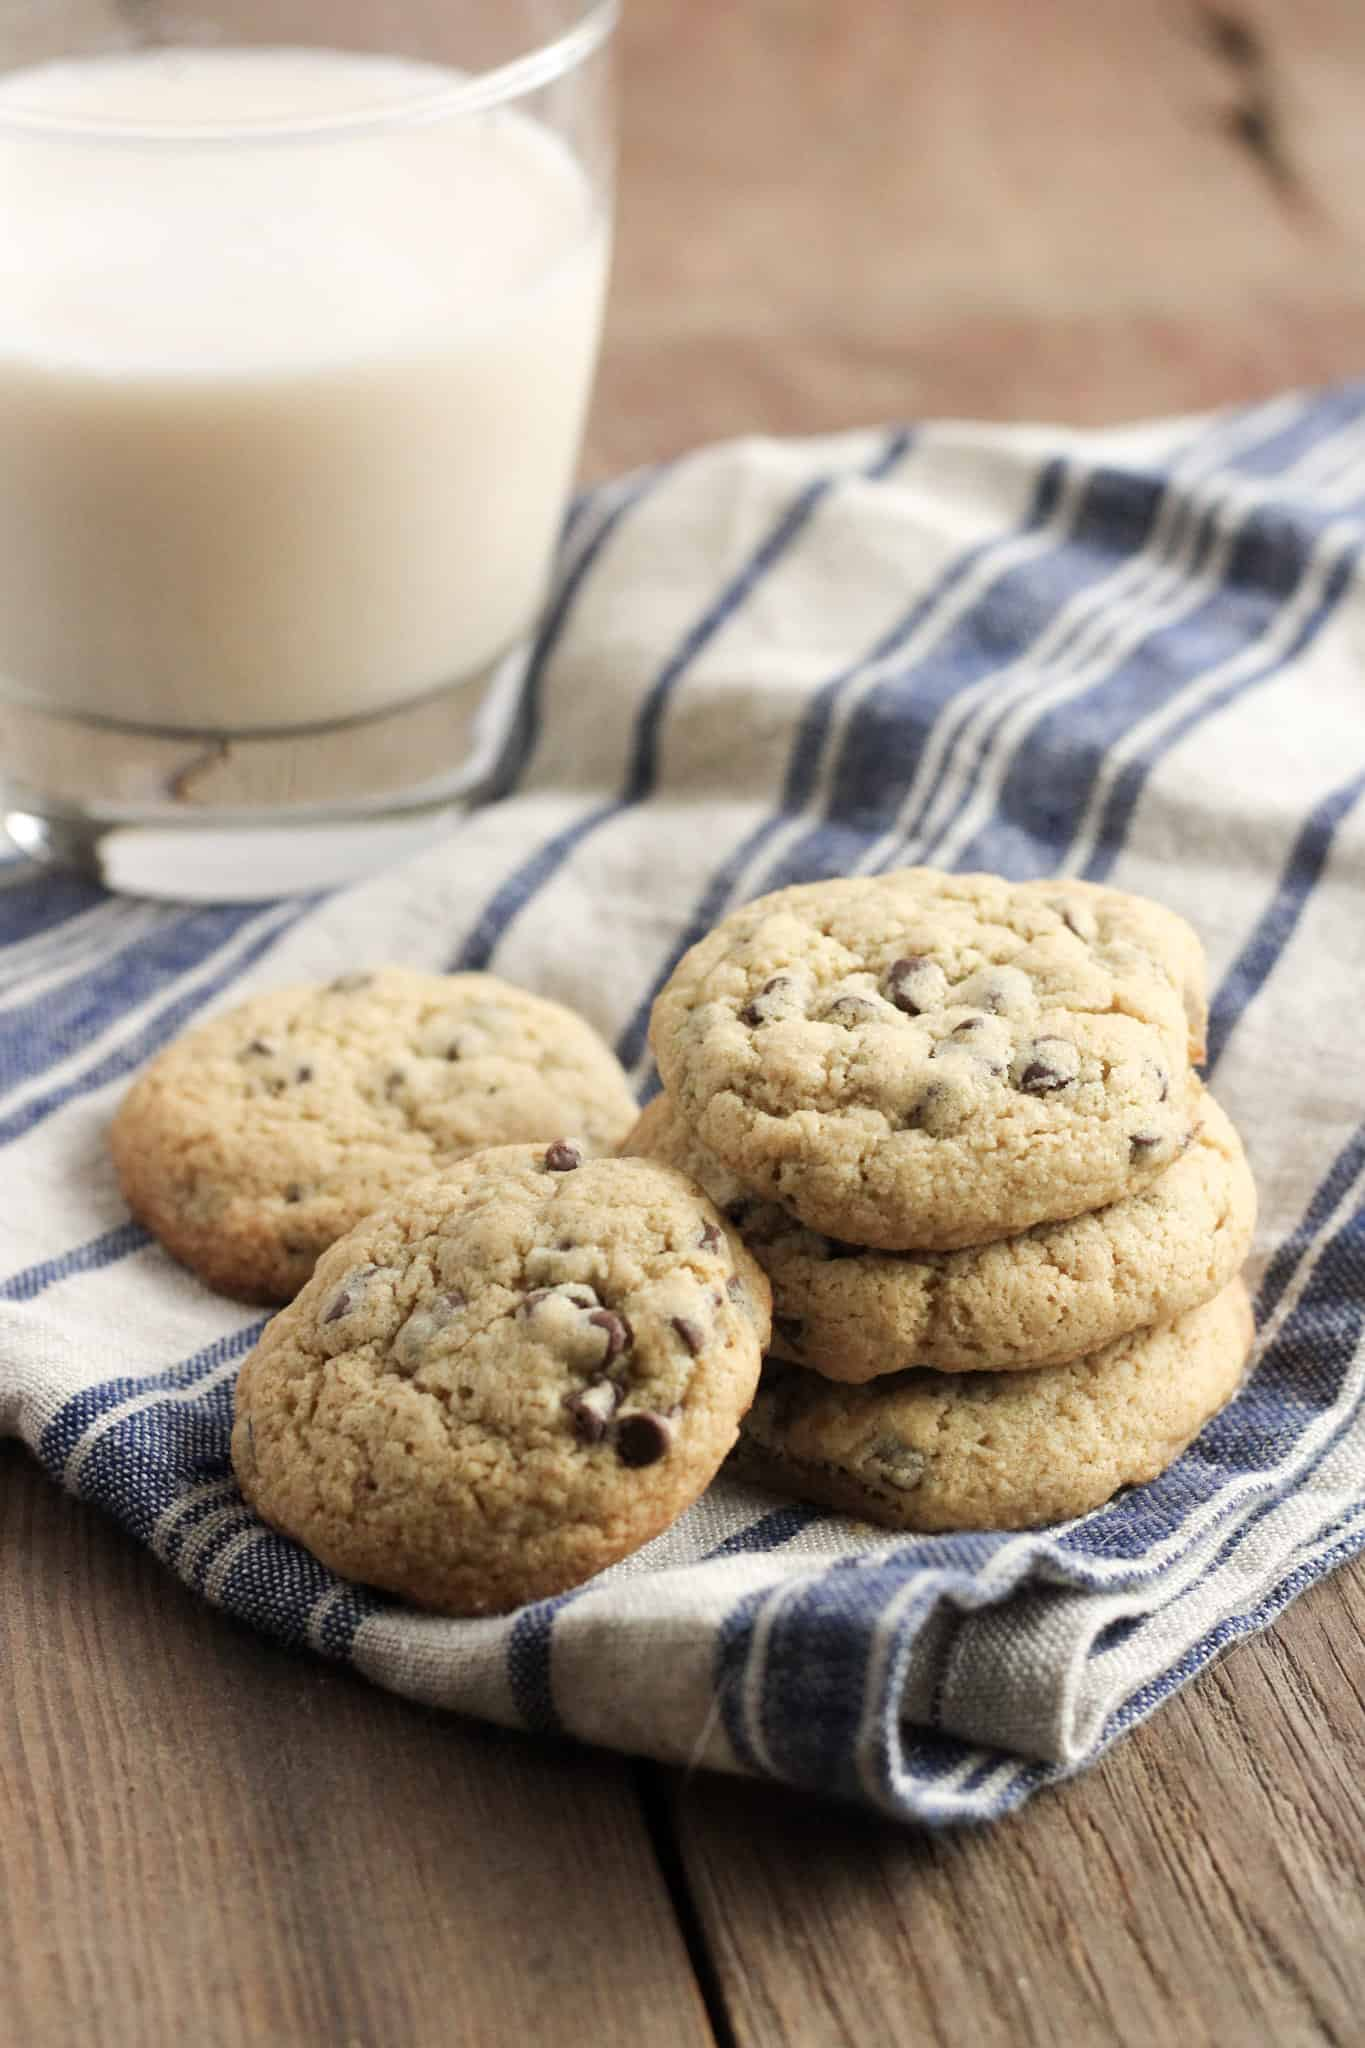 Gluten Free Chocolate Chip Cookies with Sorghum Flour